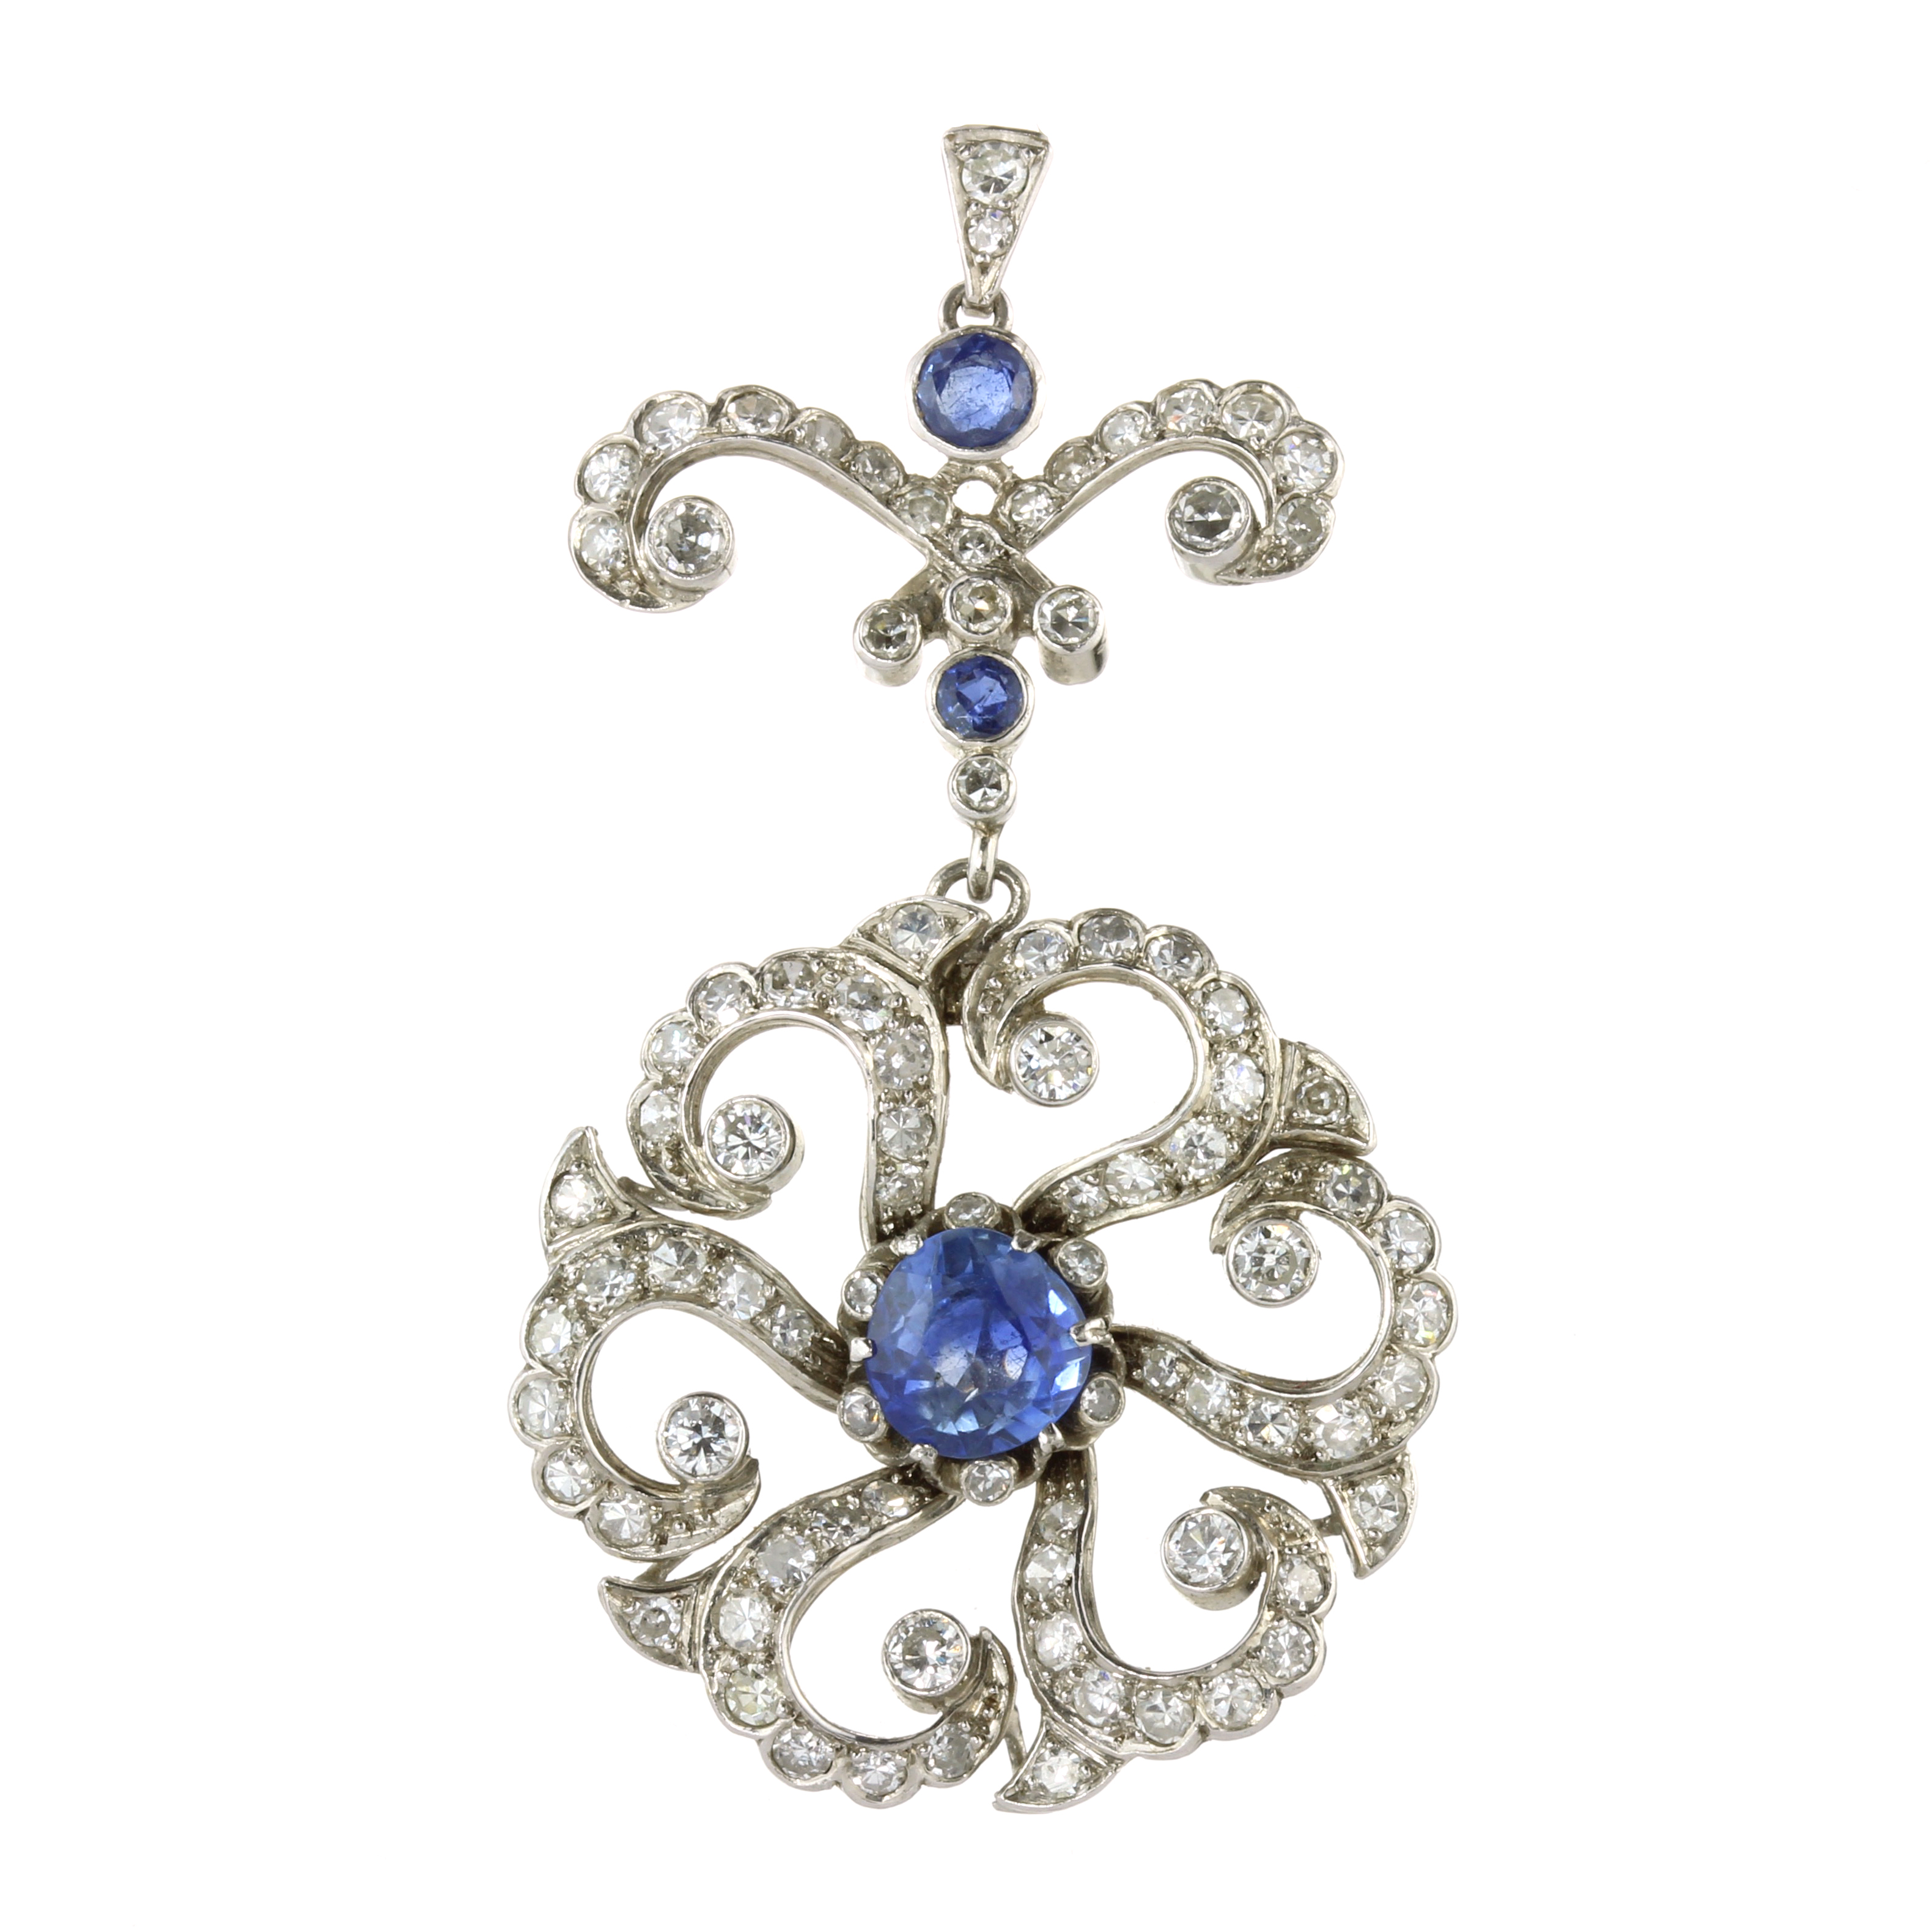 Los 39 - AN ANTIQUE CEYLON NO HEAT BLUE SAPPHIRE AND DIAMOND PENDANT in white gold or platinum, set with a